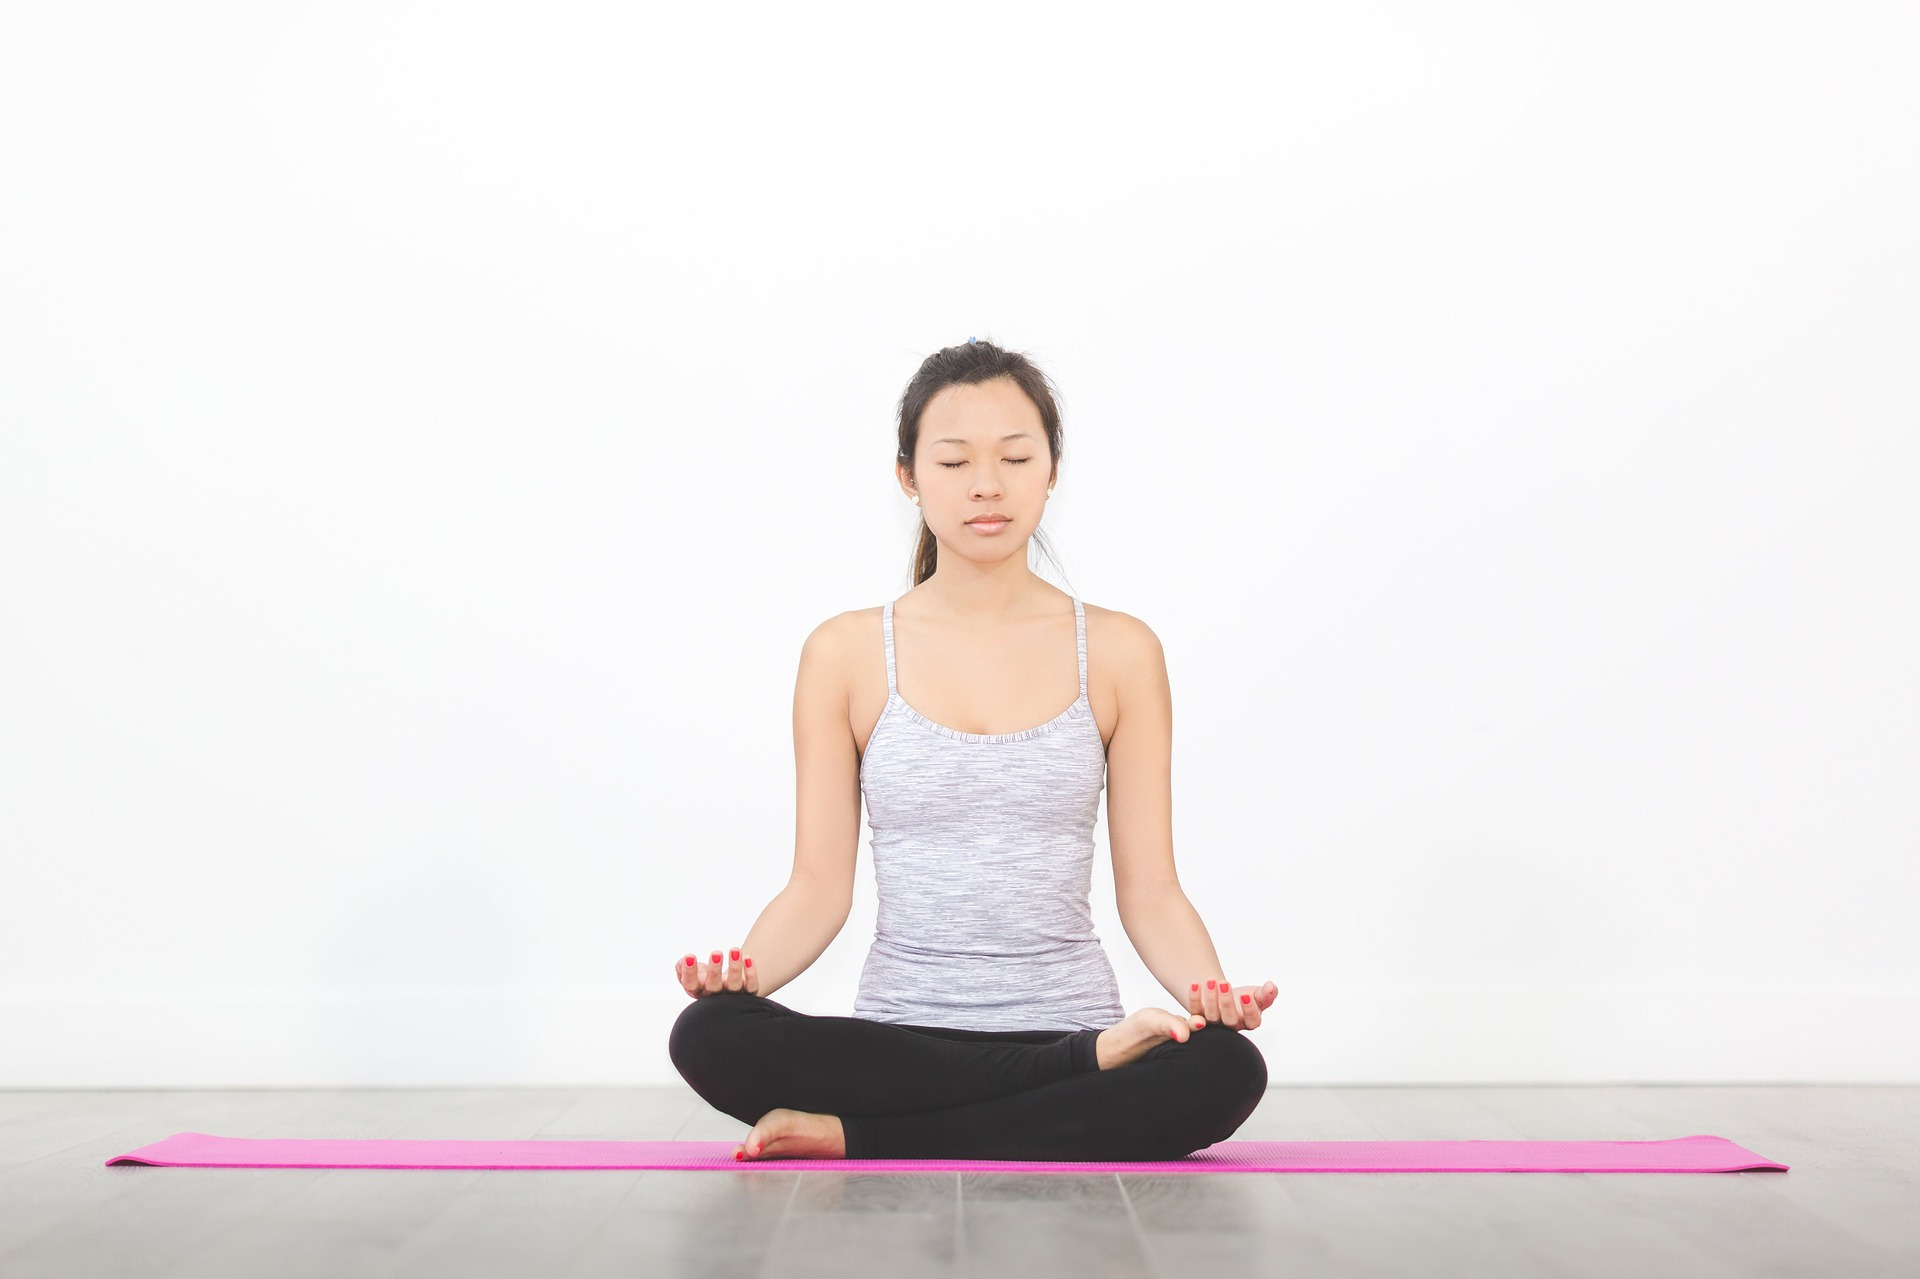 Image depicting woman practicing Yoga and meditation on pink Yoga mat